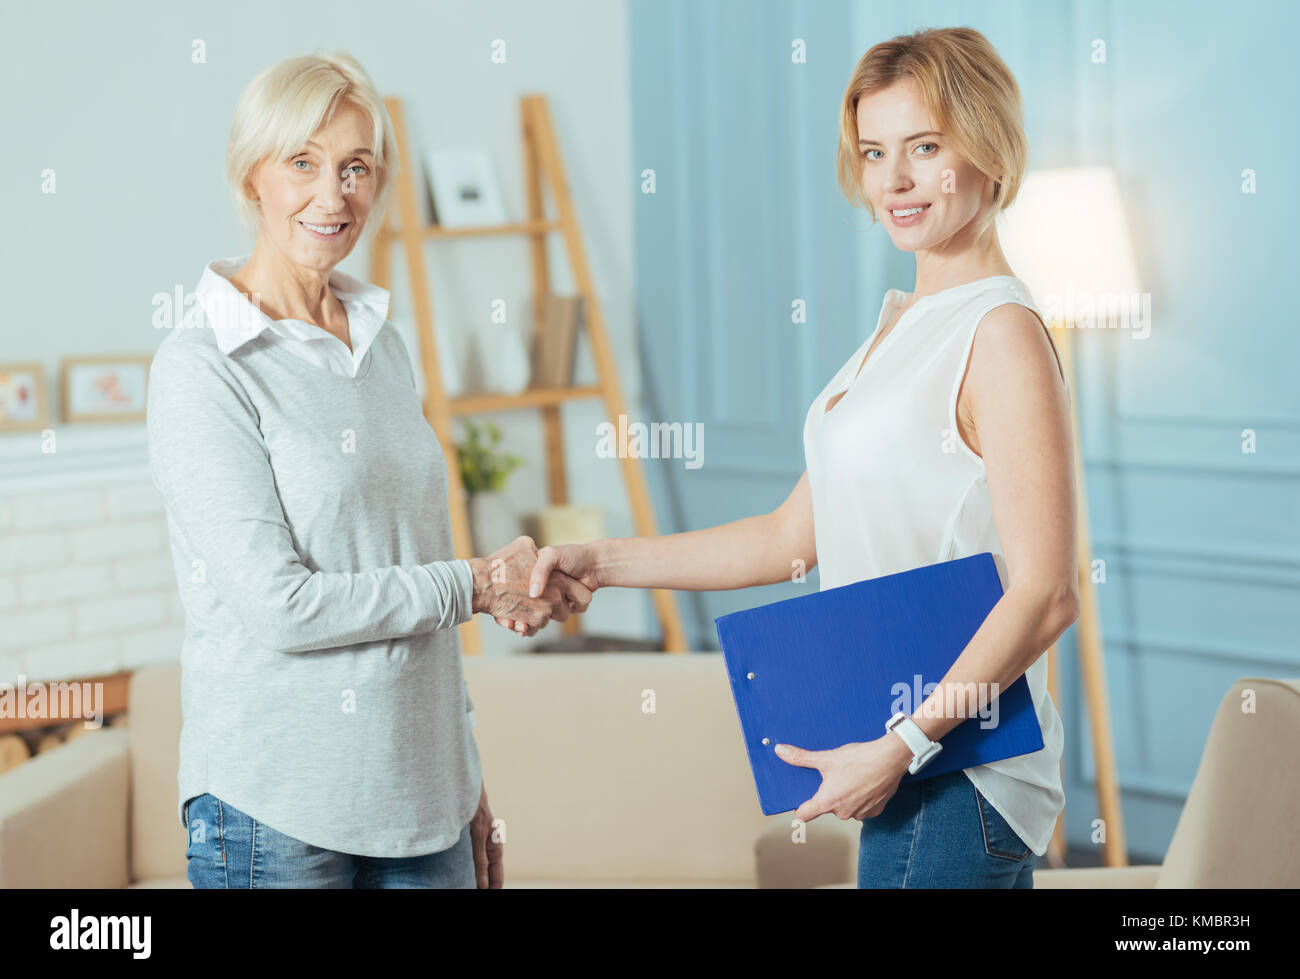 Smart financial advisor shaking hands with her grateful client and smiling - Stock Image